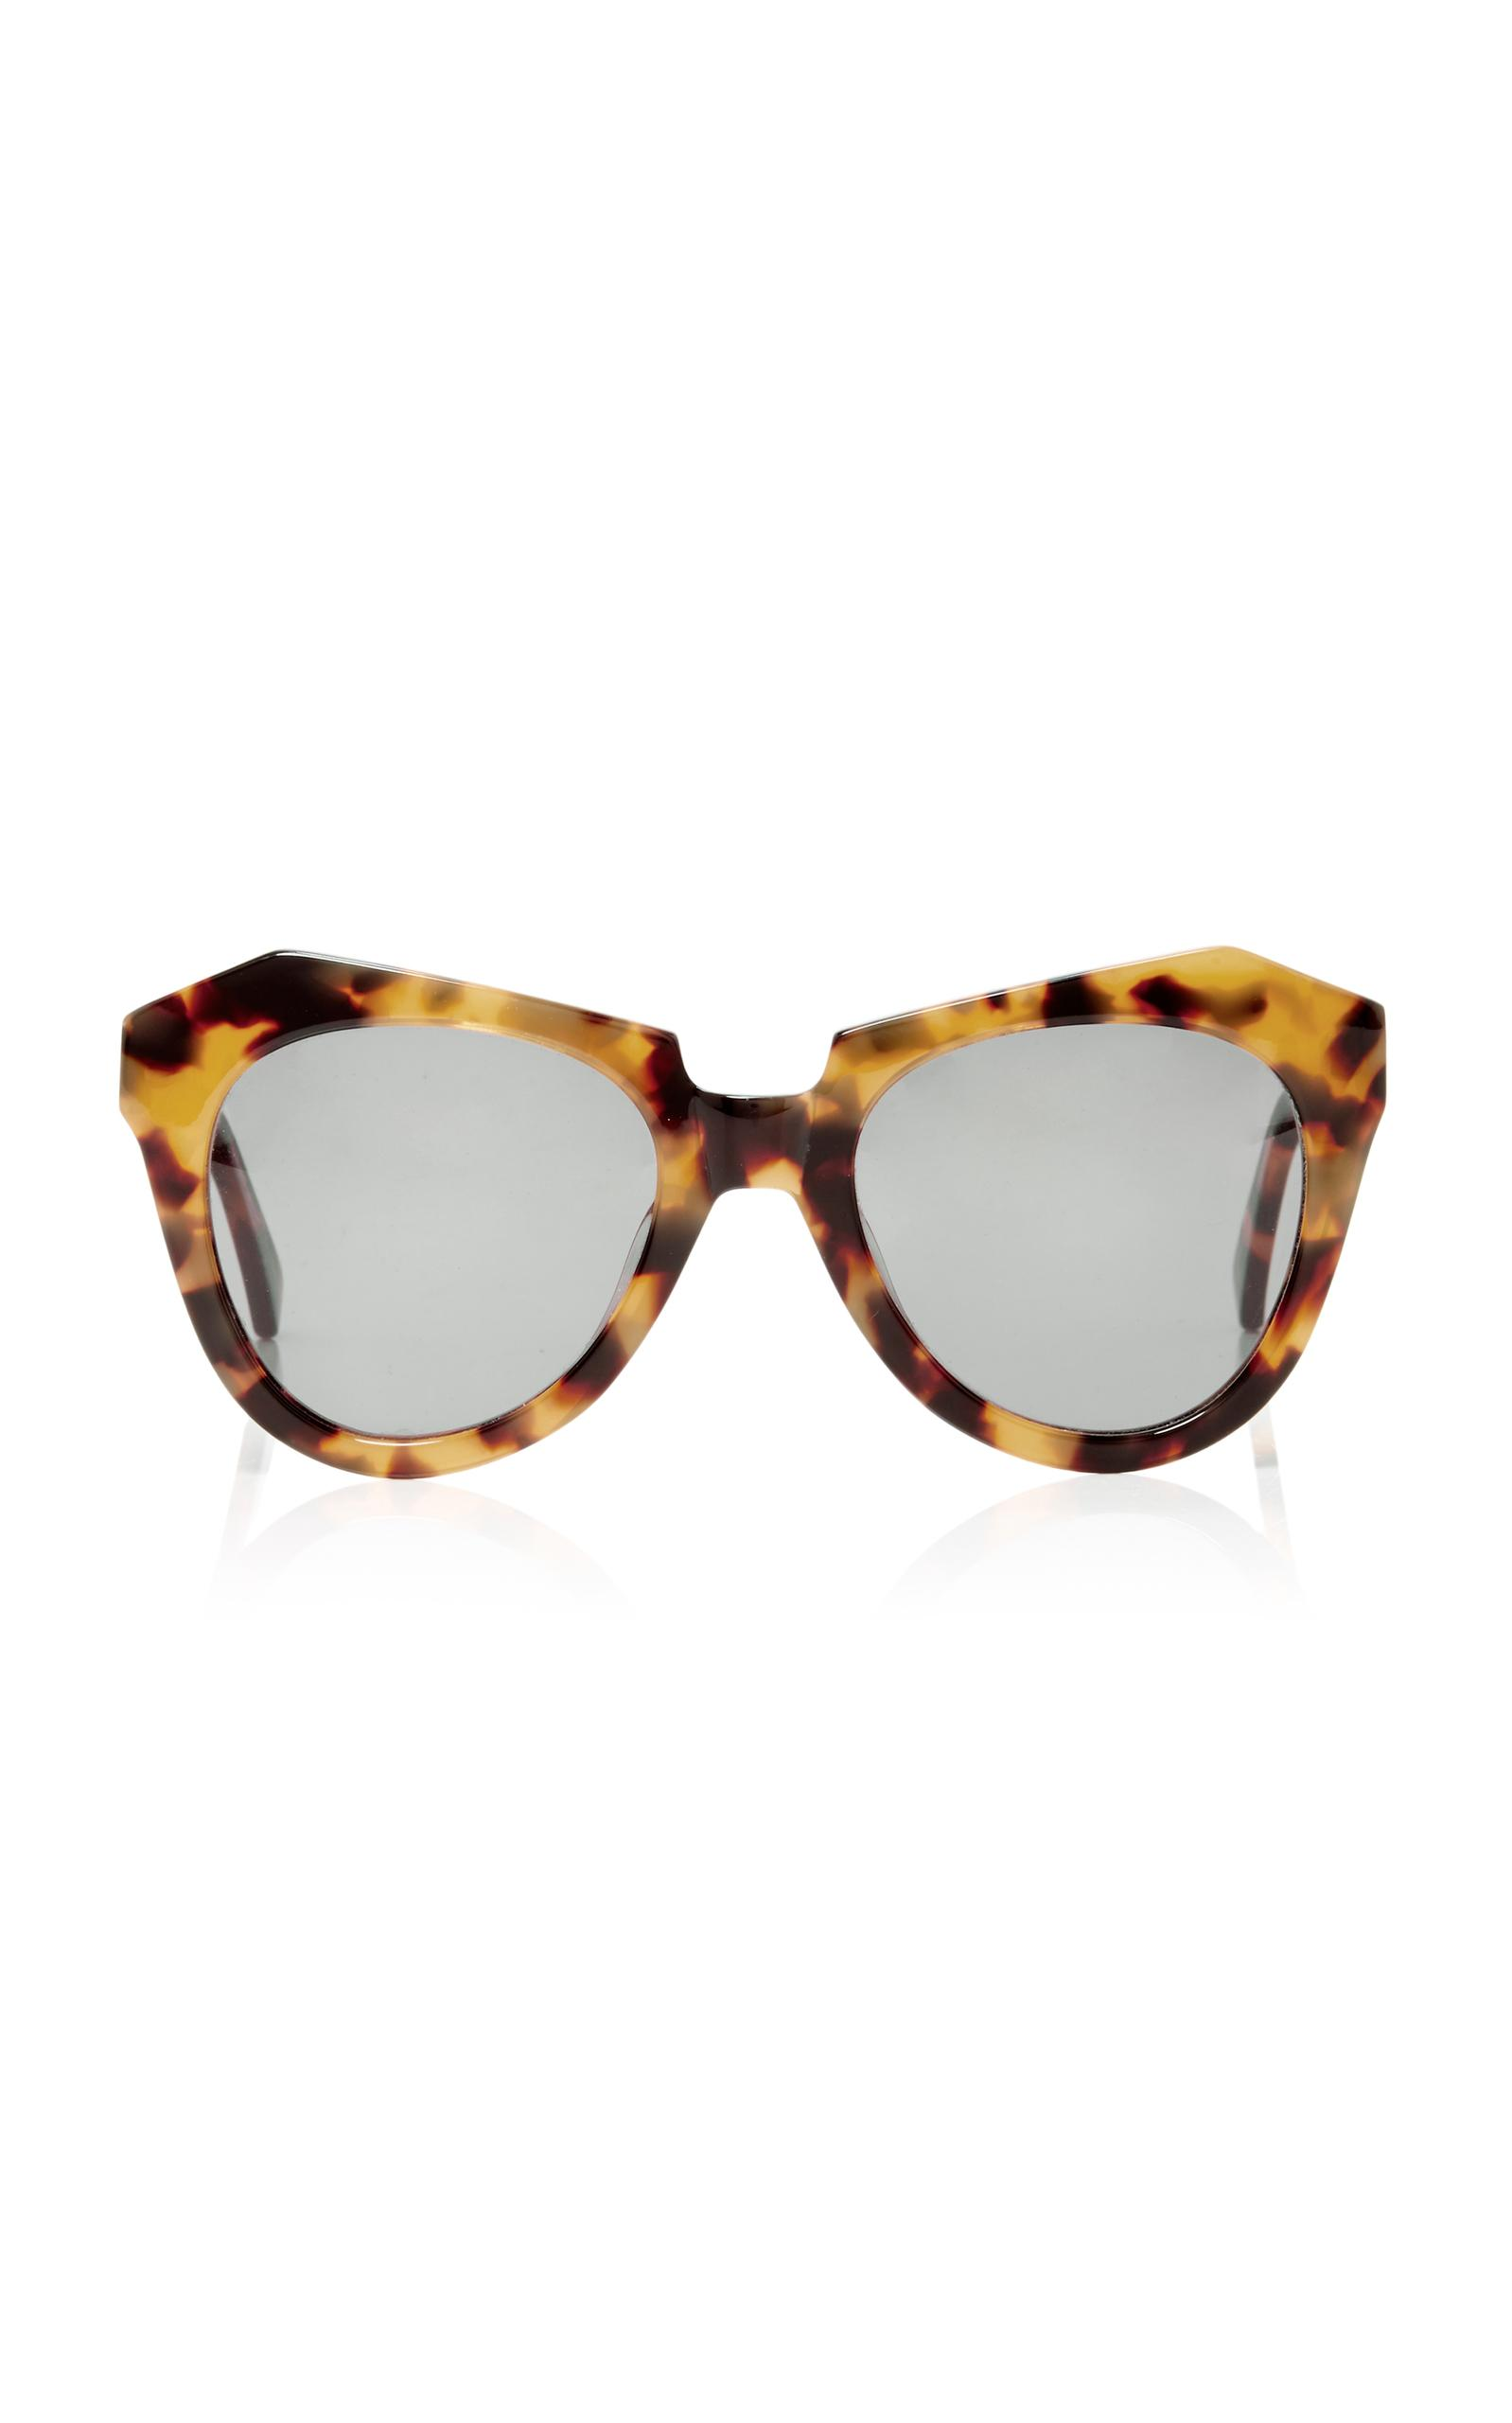 9bbcaab13a0 Karen Walker Number One Round-Frame Tortoiseshell Acetate Sunglasses In  Brown